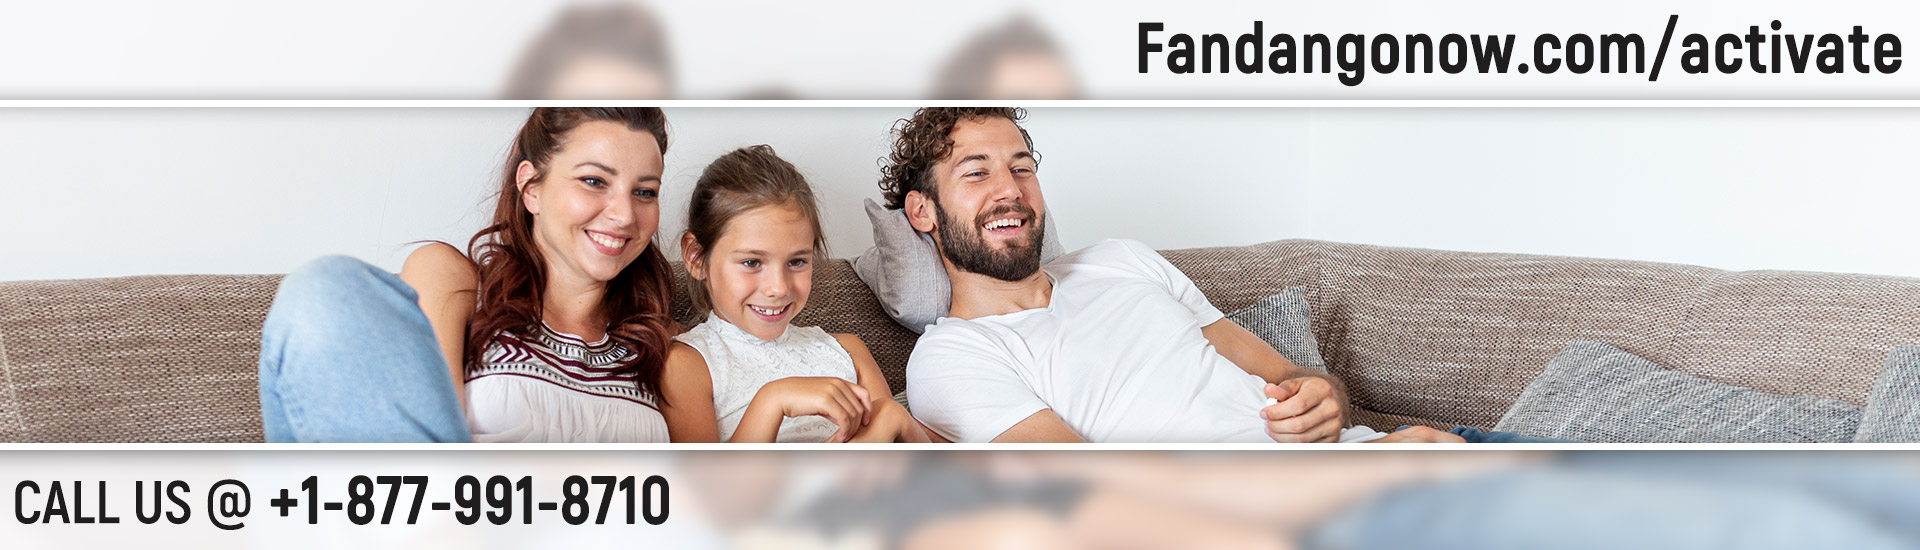 Activate Fandango Now channel on your gadget image 1